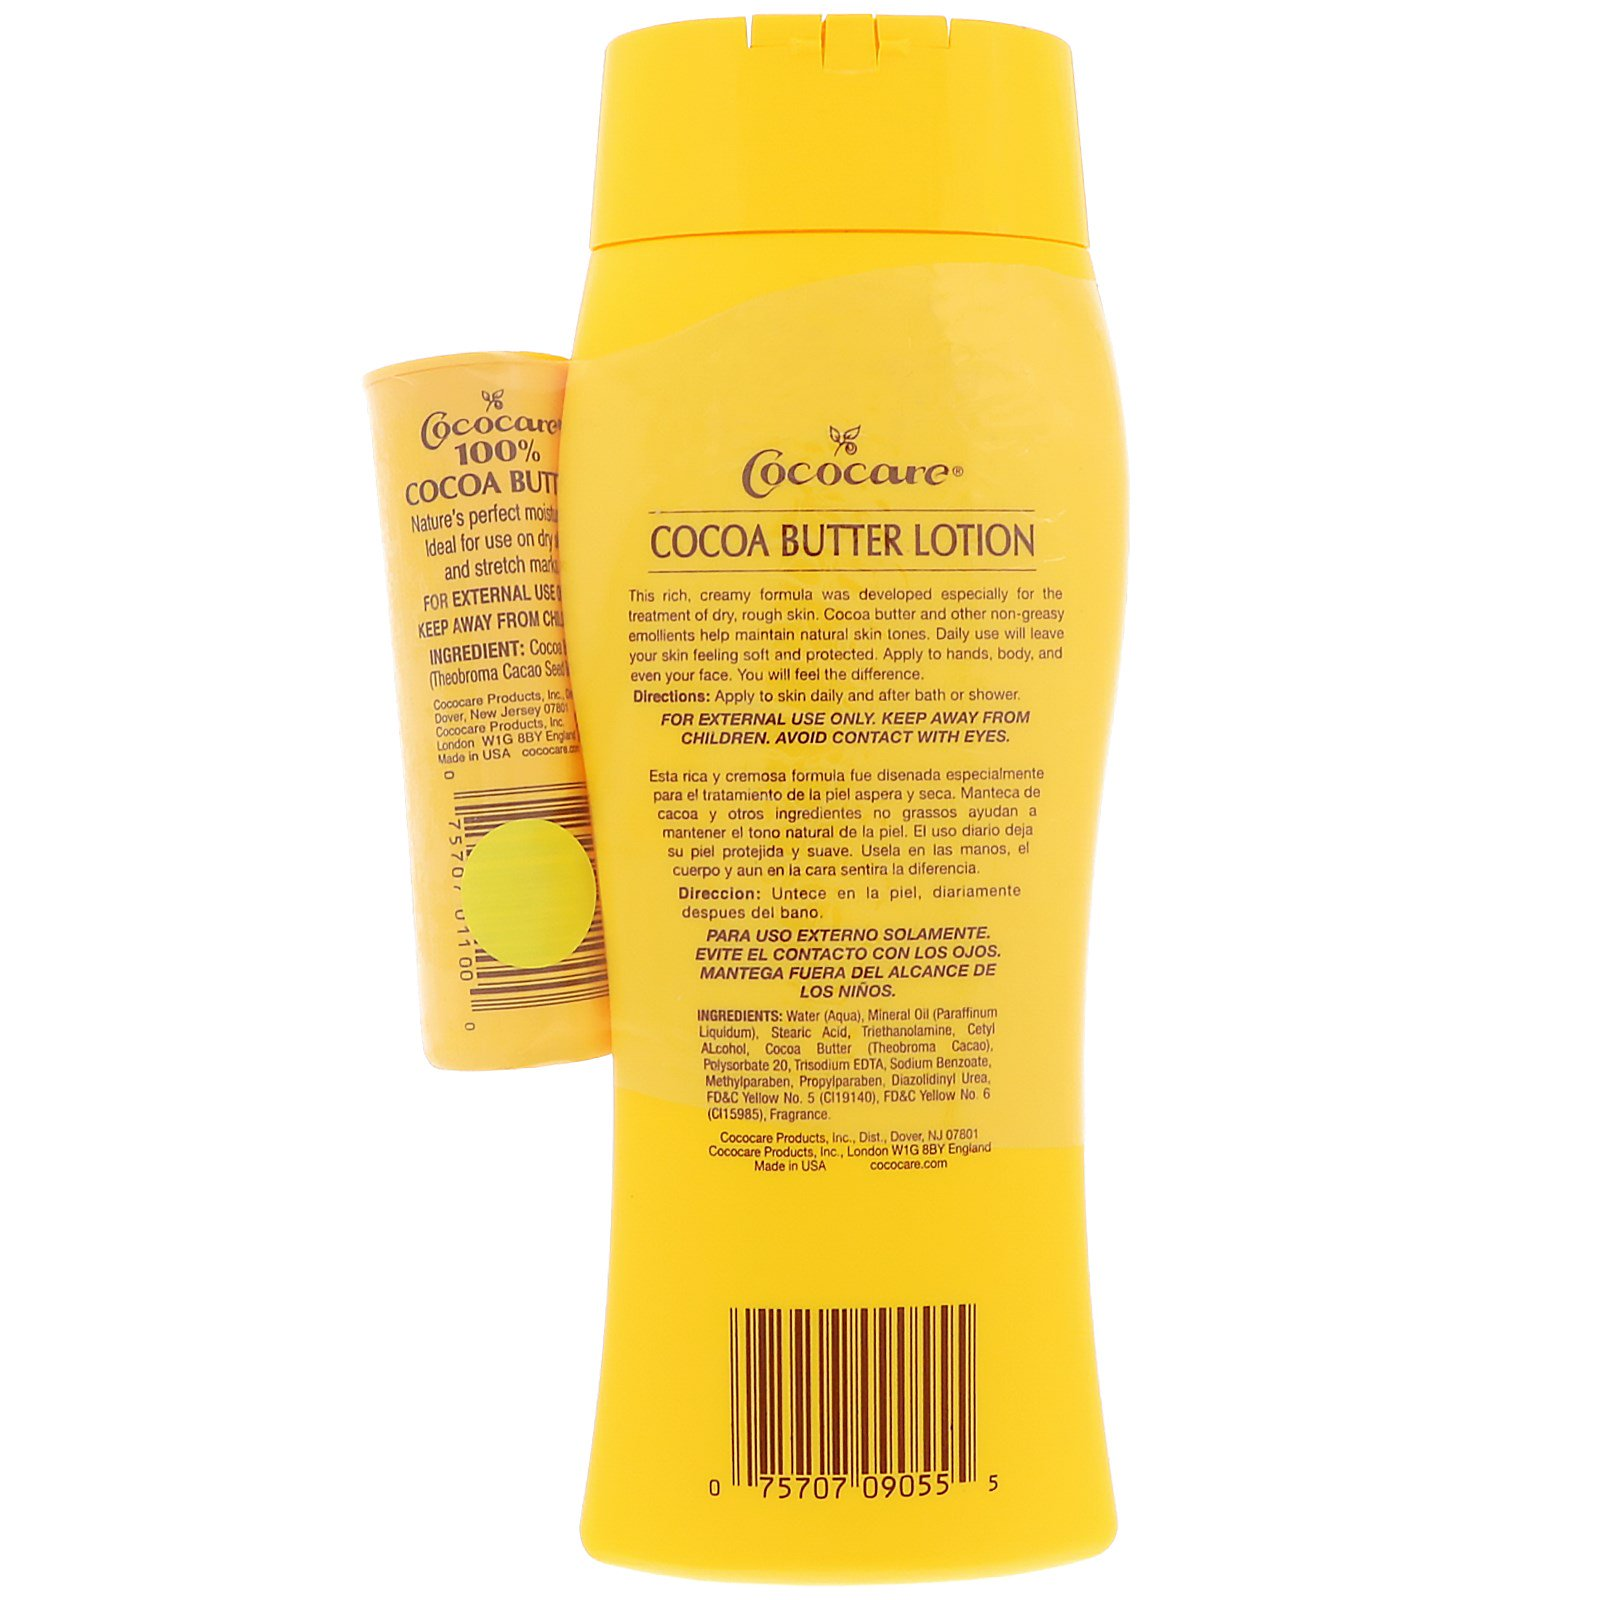 Cococare, The Yellow One, Cocoa Butter Lotion with Free